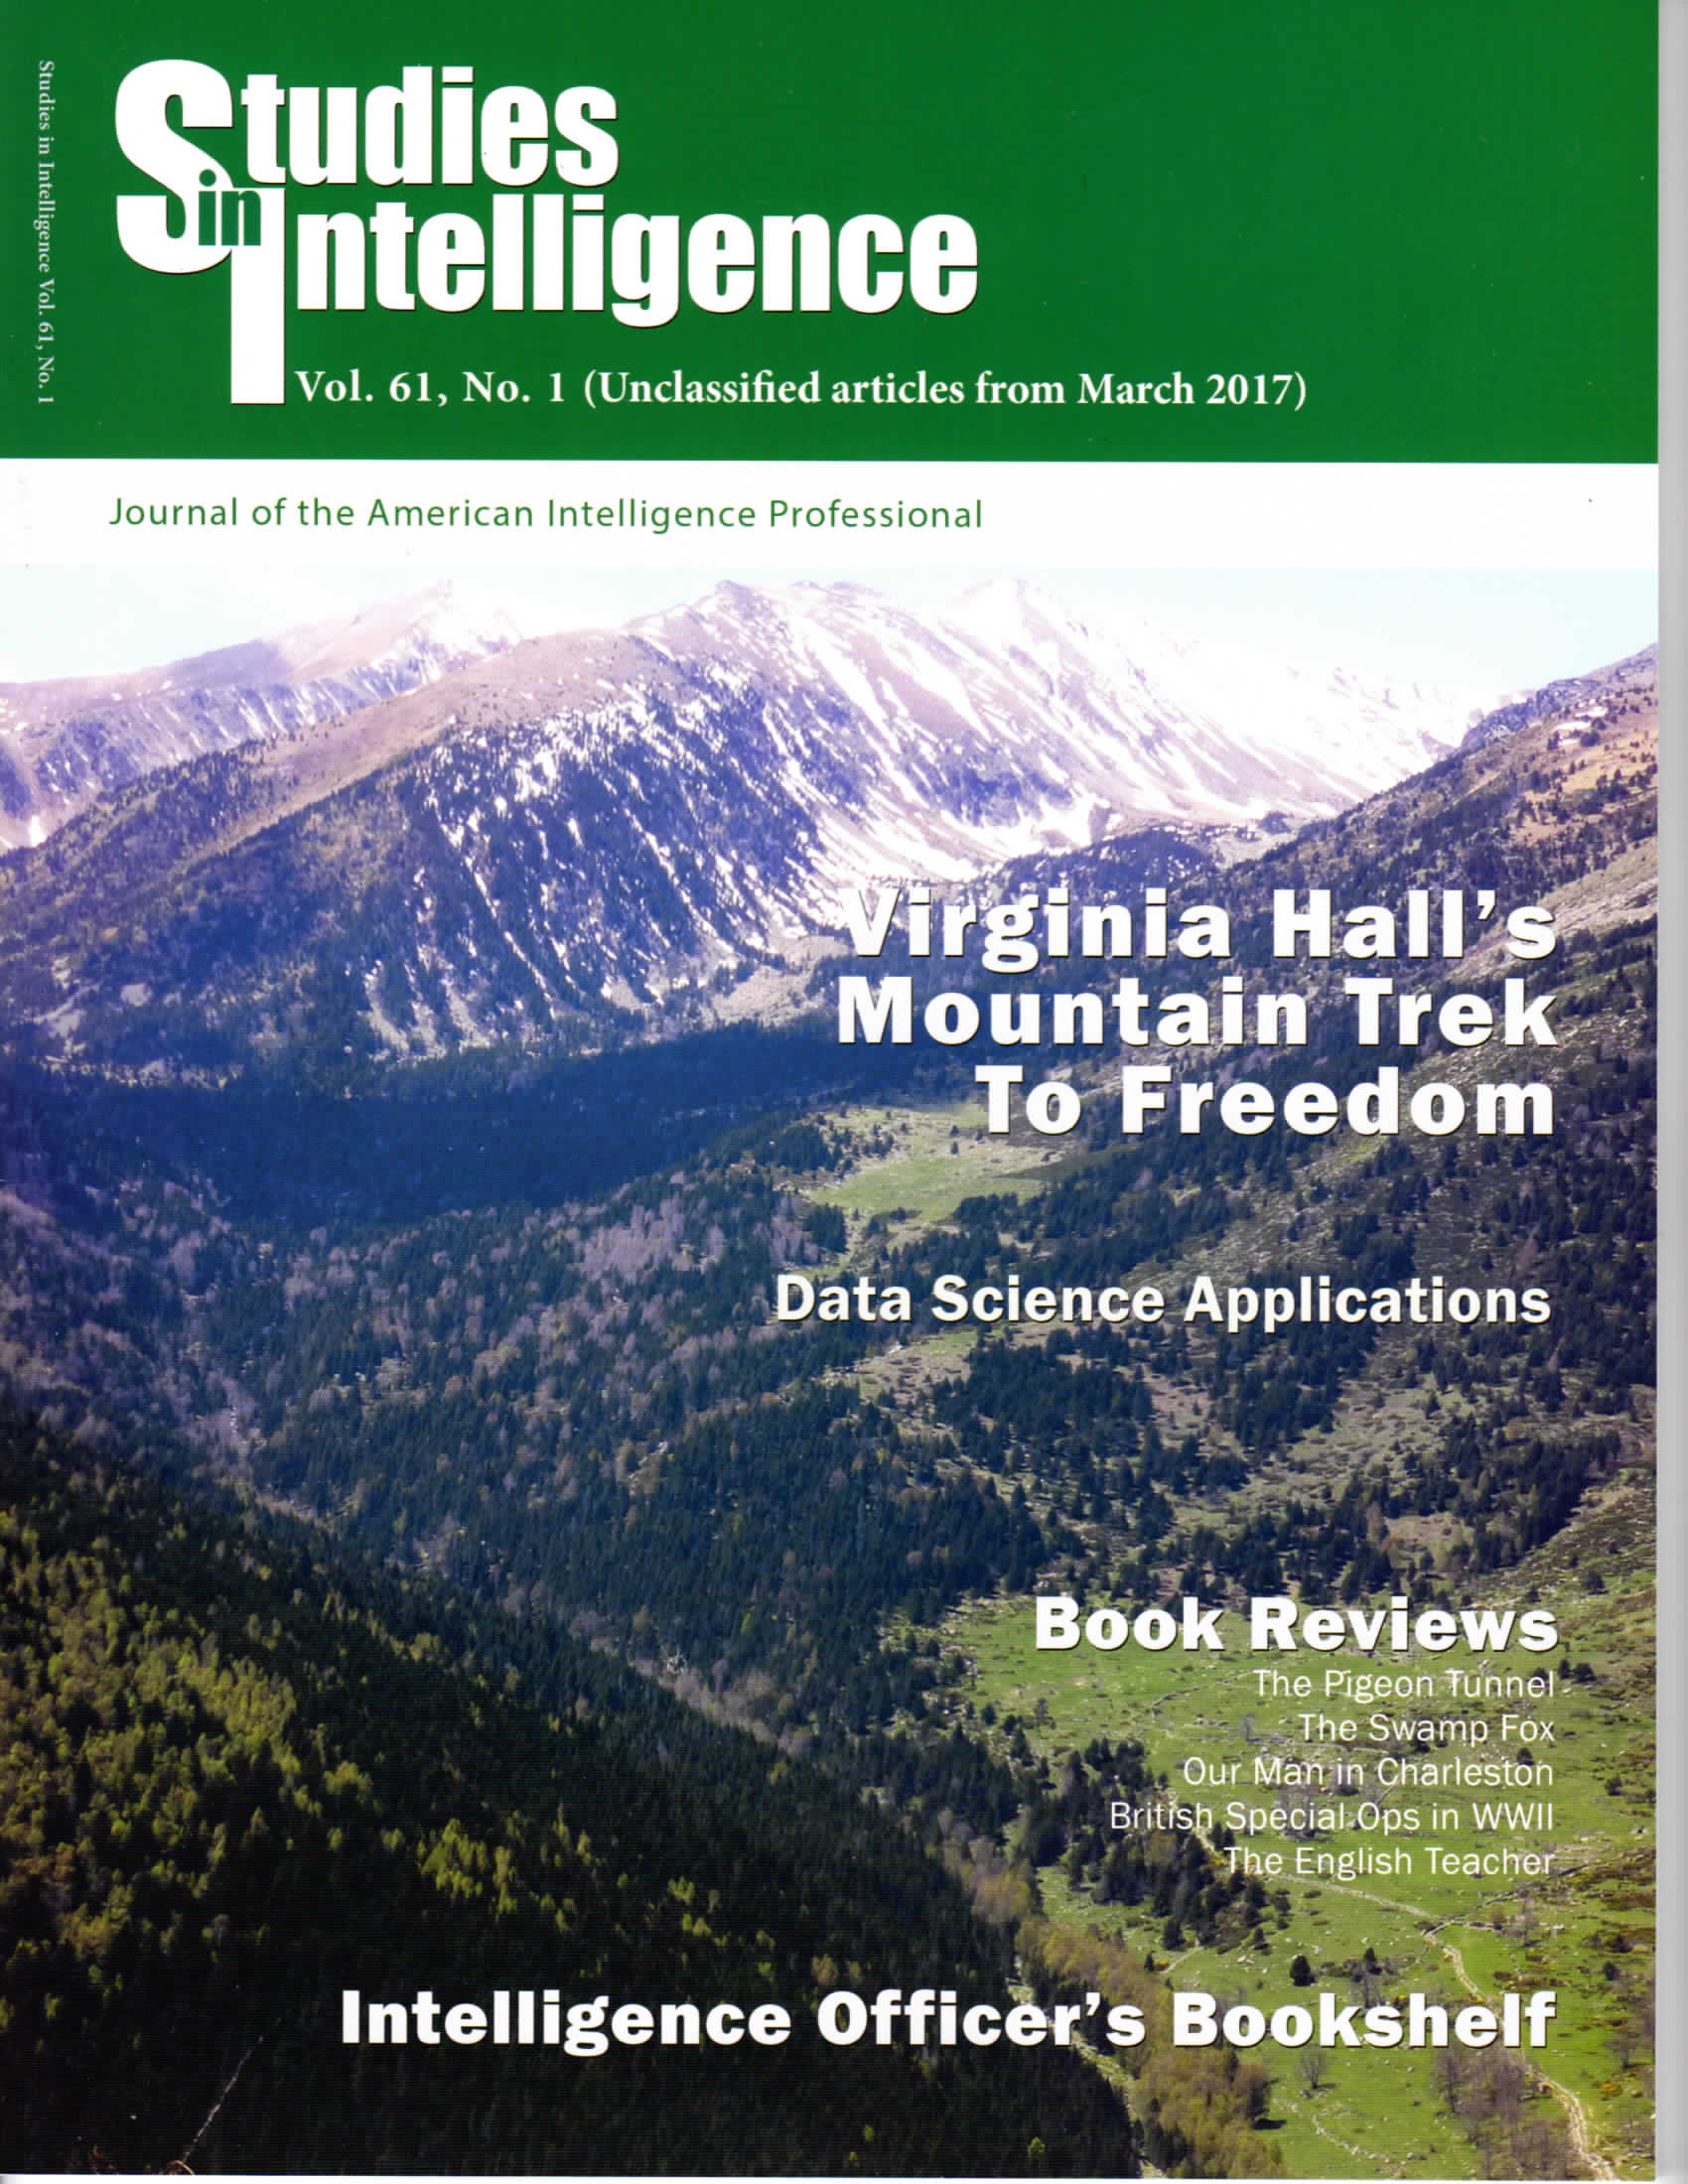 Studies in Intelligence magazine Cover